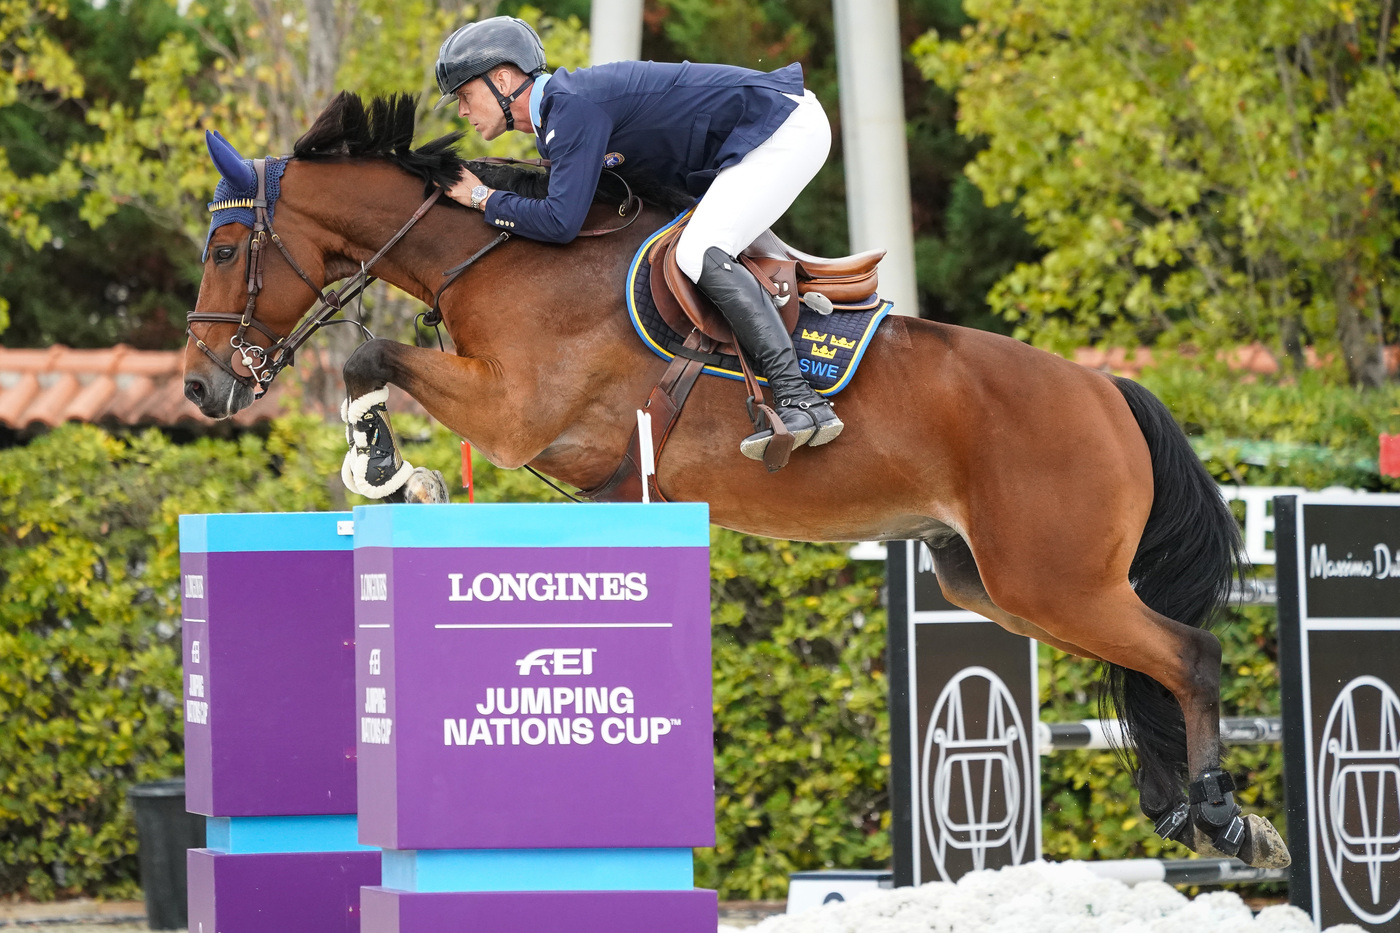 Longines Equestrian Event: Thrilling sports performances and emotional moments at the Longines FEI Jumping Nations CupTM Final with Longines Ambassador of Elegance Simon Baker 7